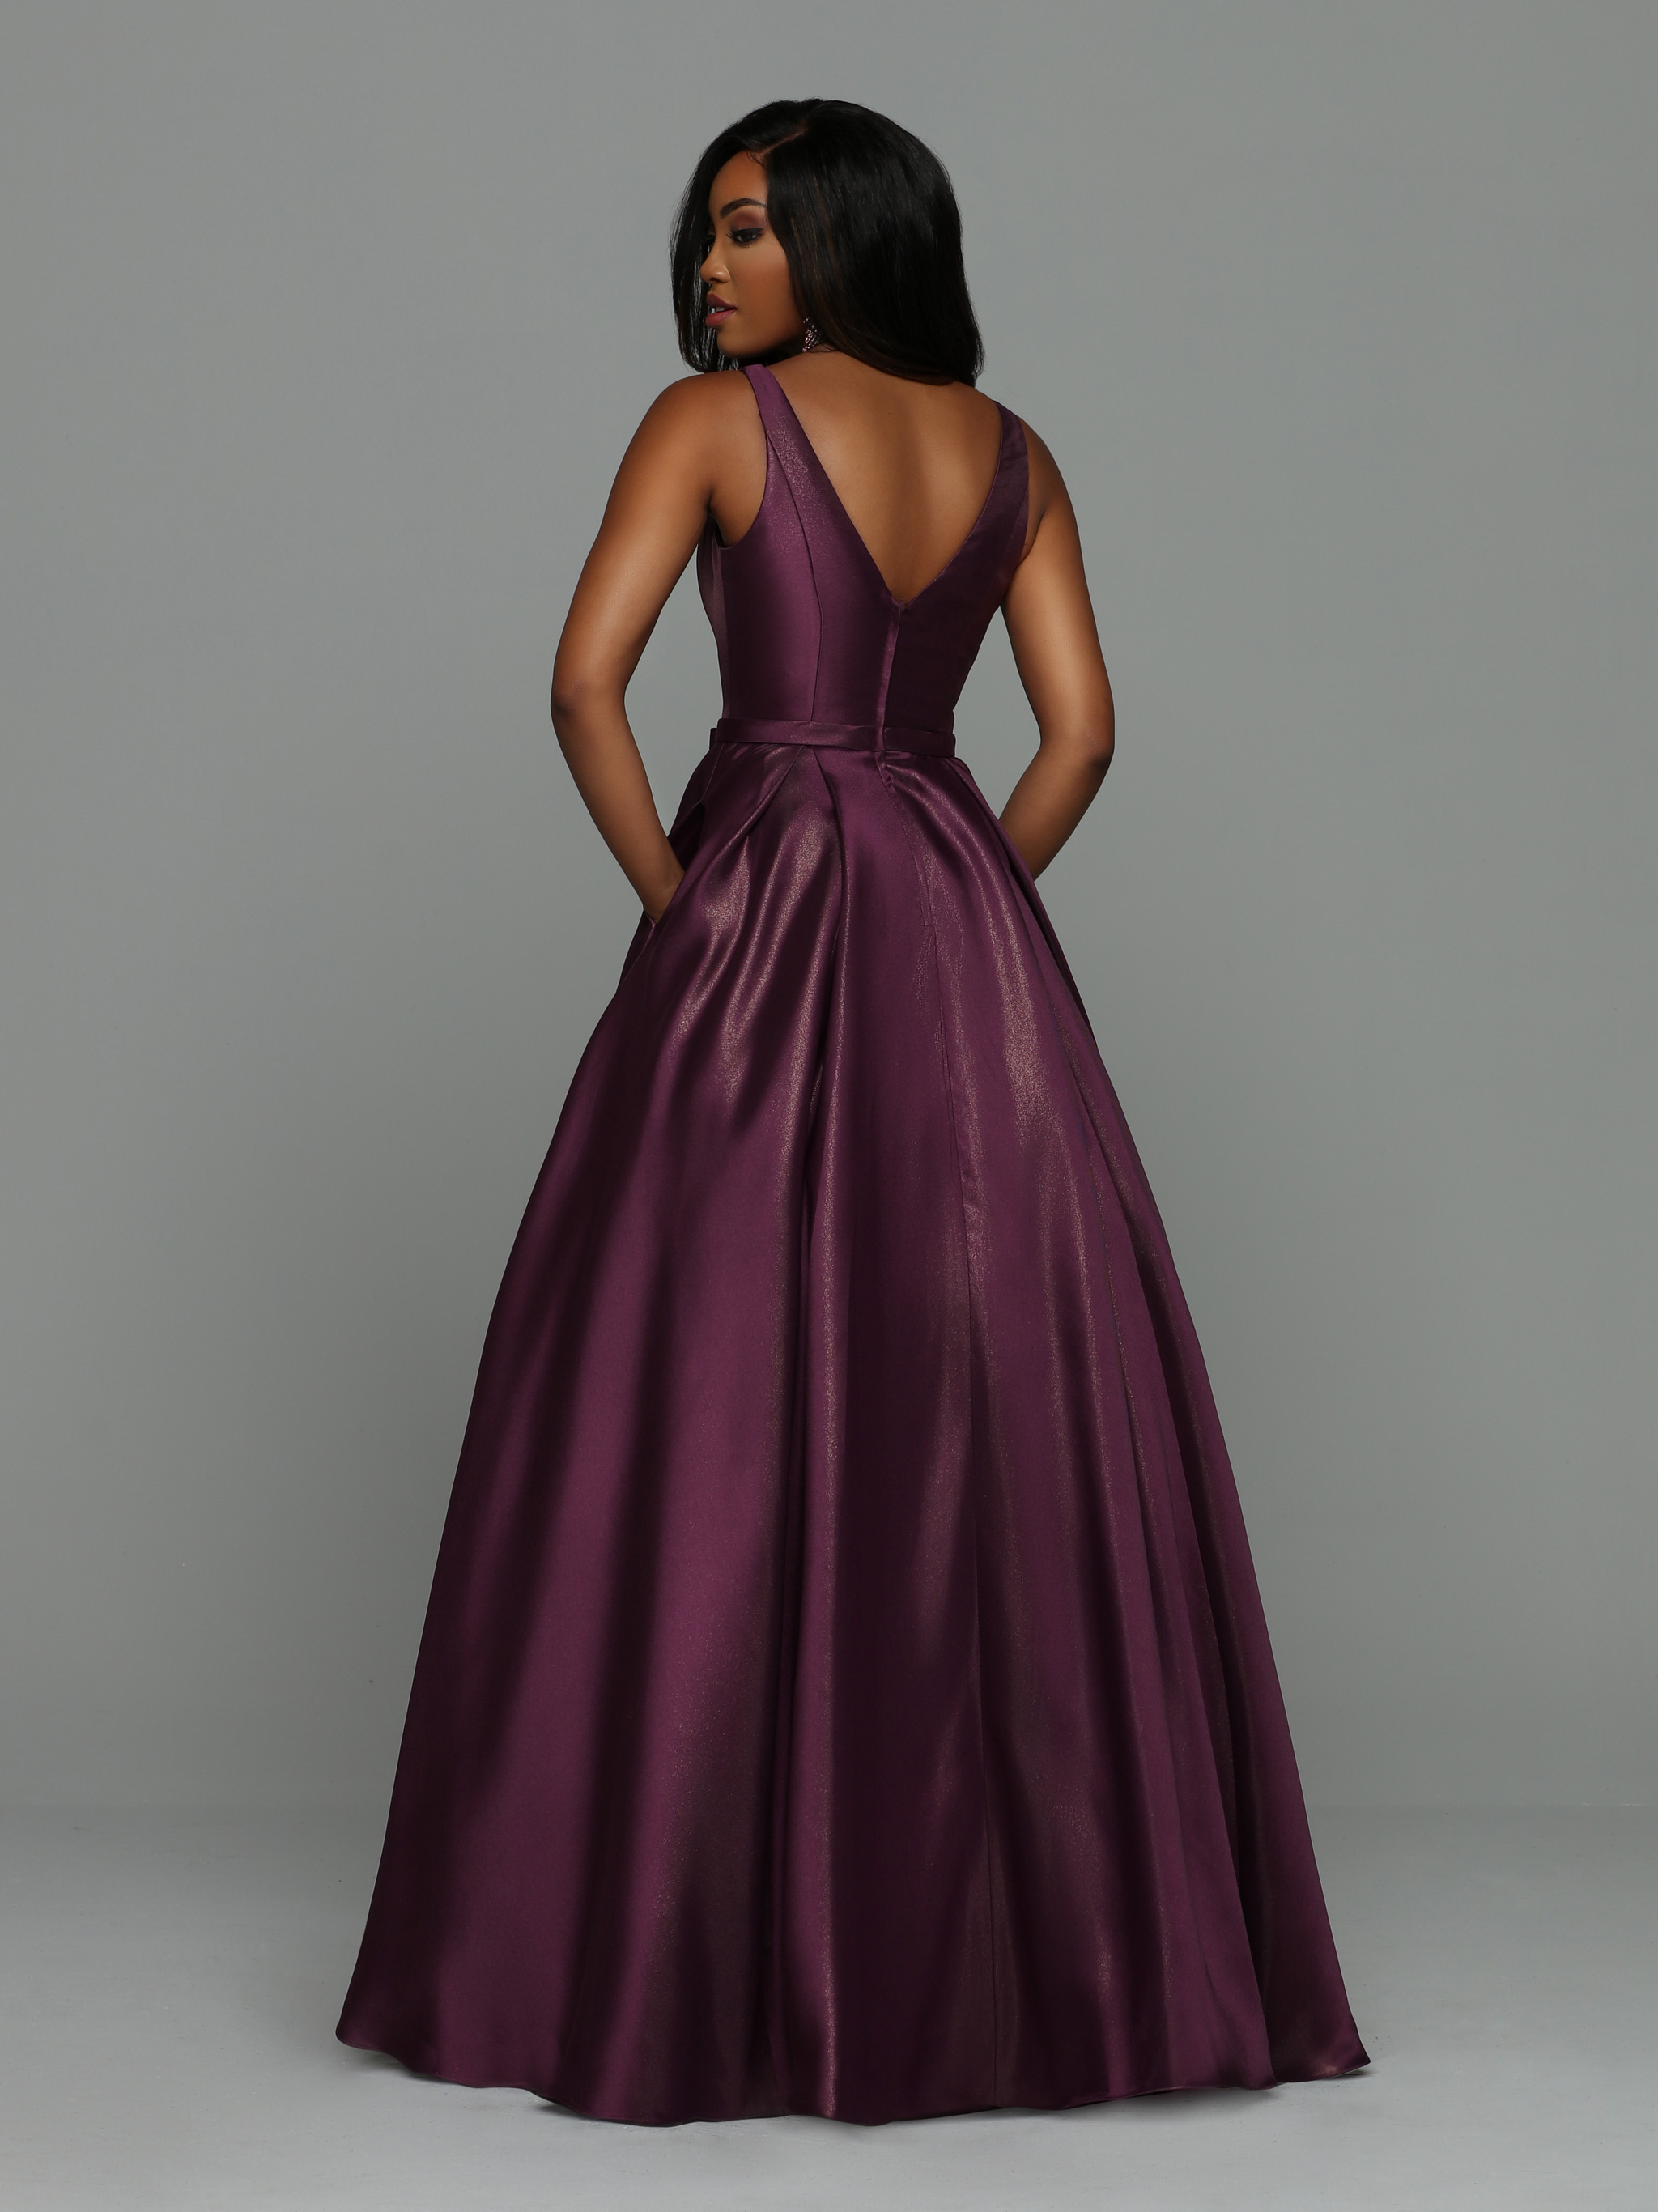 Image showing back view of style #71924